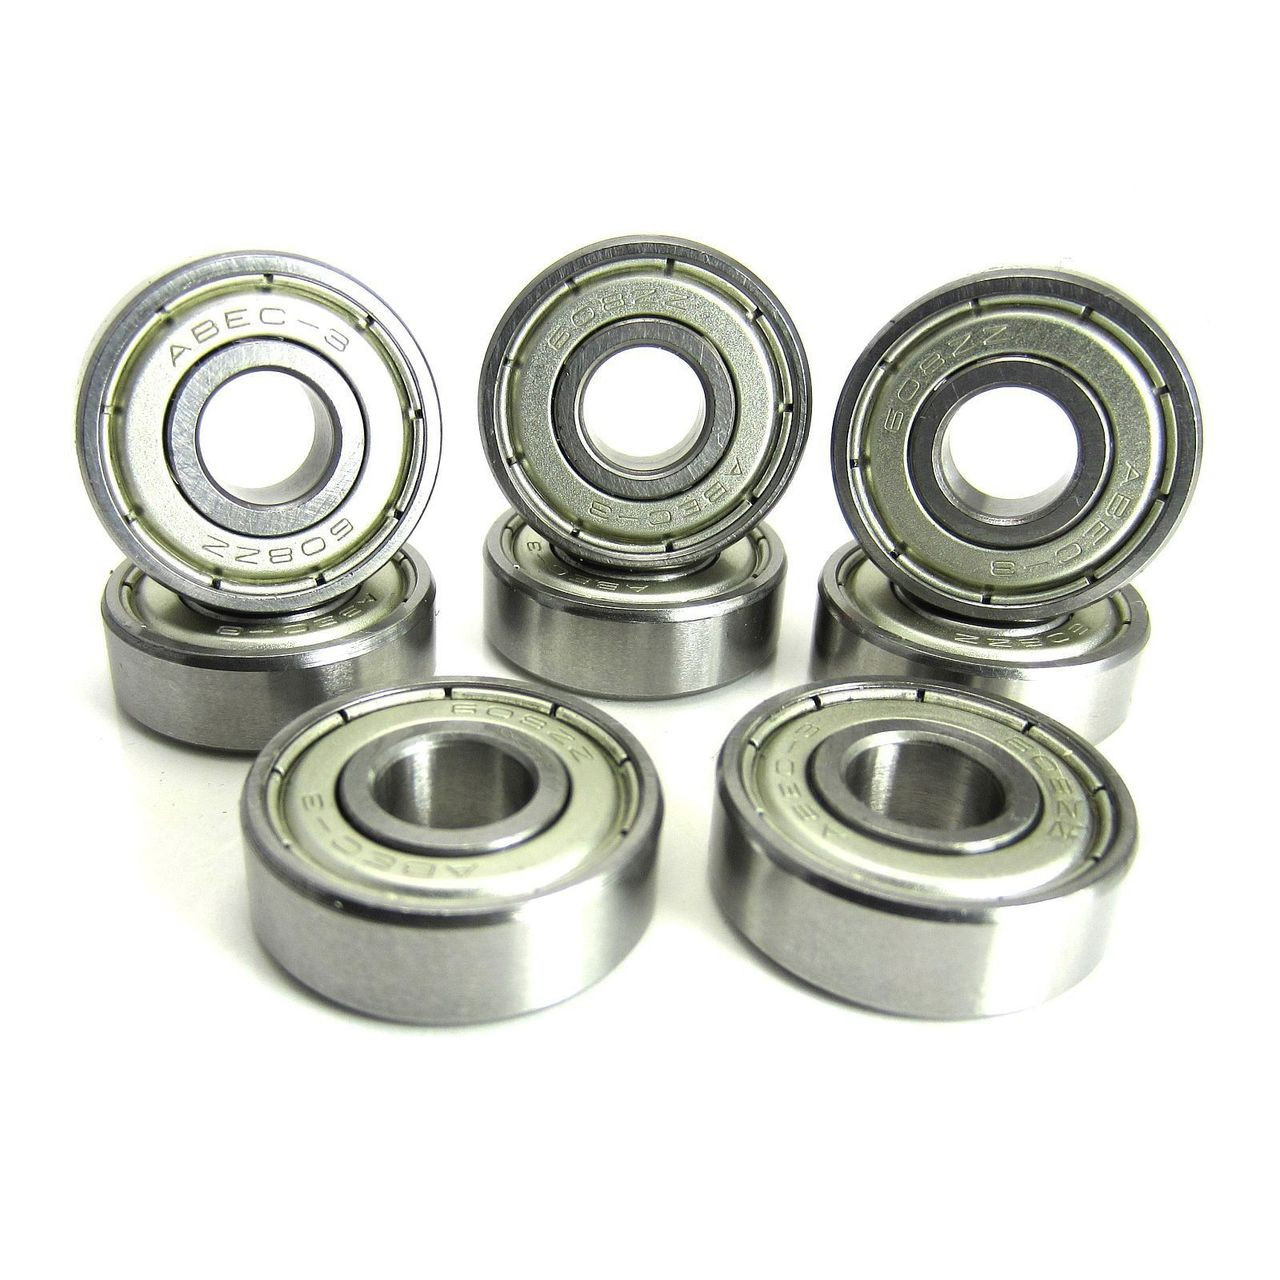 TRB RC 8x22x7mm ABEC 3 Precision Skate Ball Bearings Metal Shields